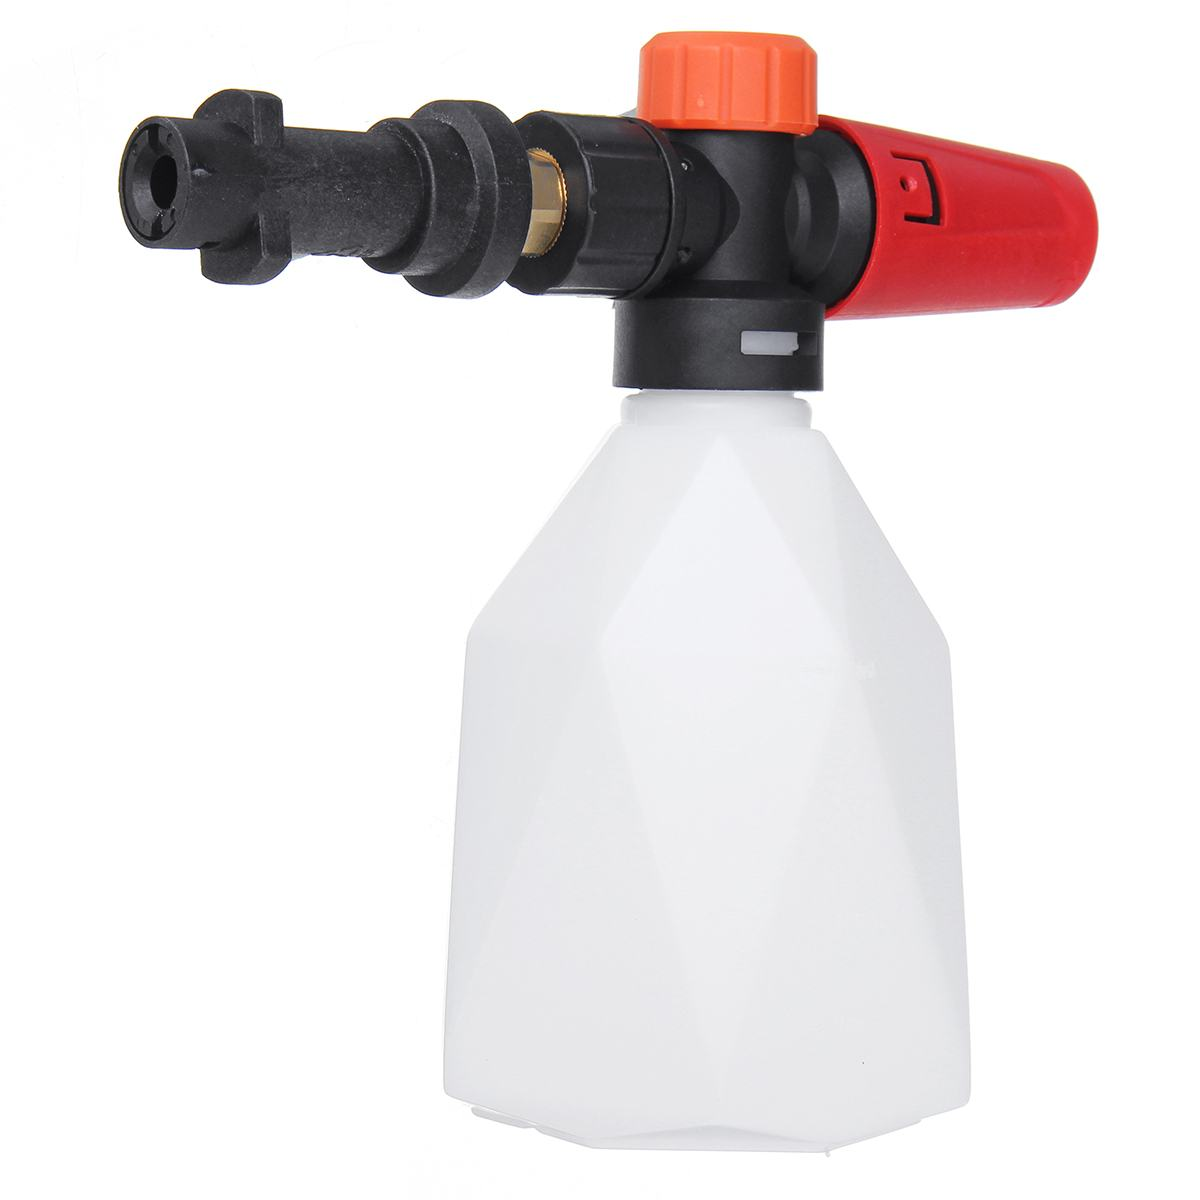 Car Foam Wash  Lance Foam Nozzle Cannon Generator For Daewoo Hammer Huter Makita High Pressure Washer